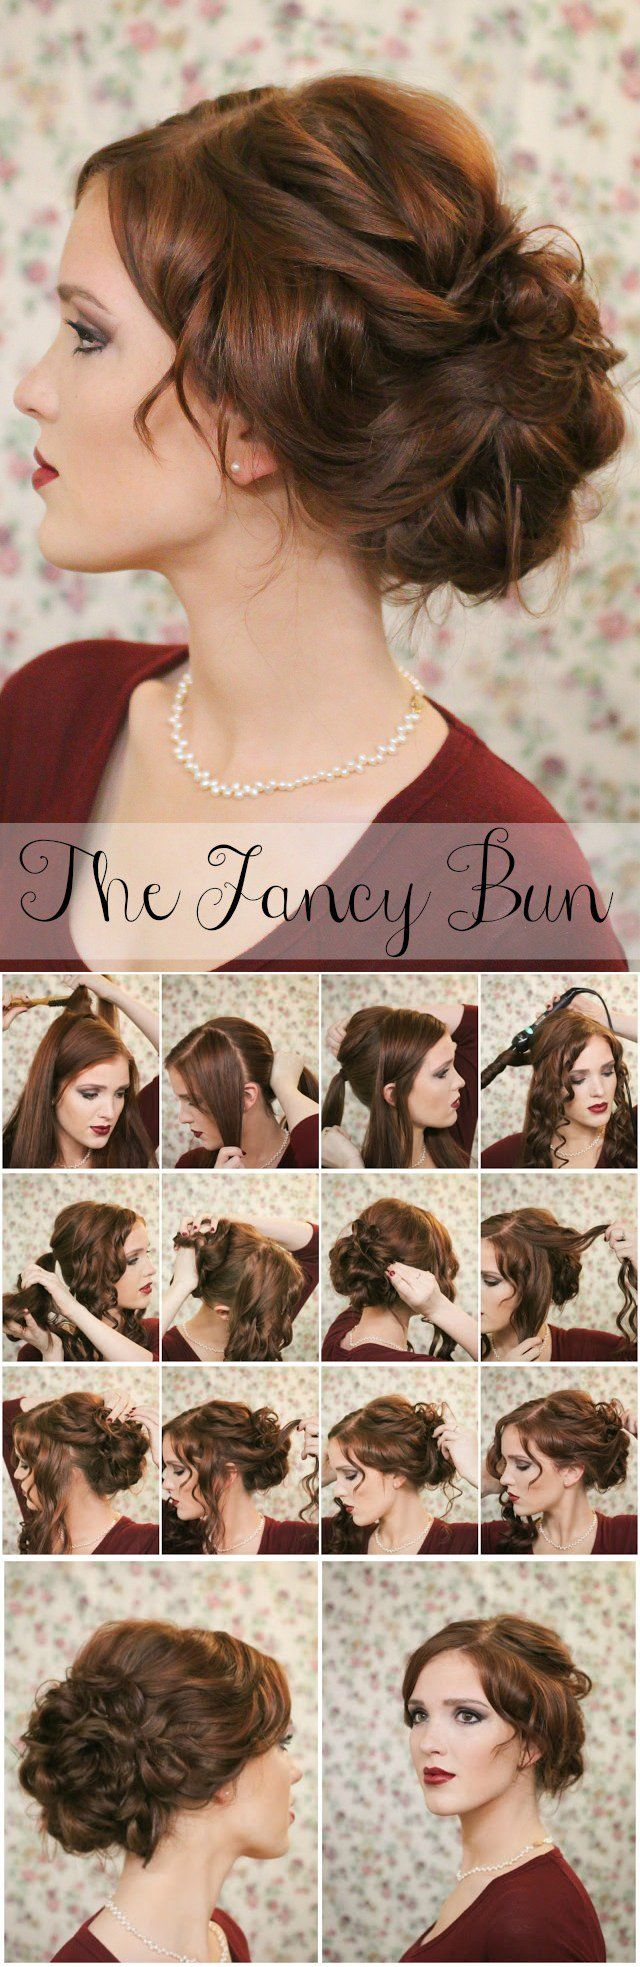 Super Straightforward Knotted Bun Updo and Easy Bun Hairstyle Tutorials